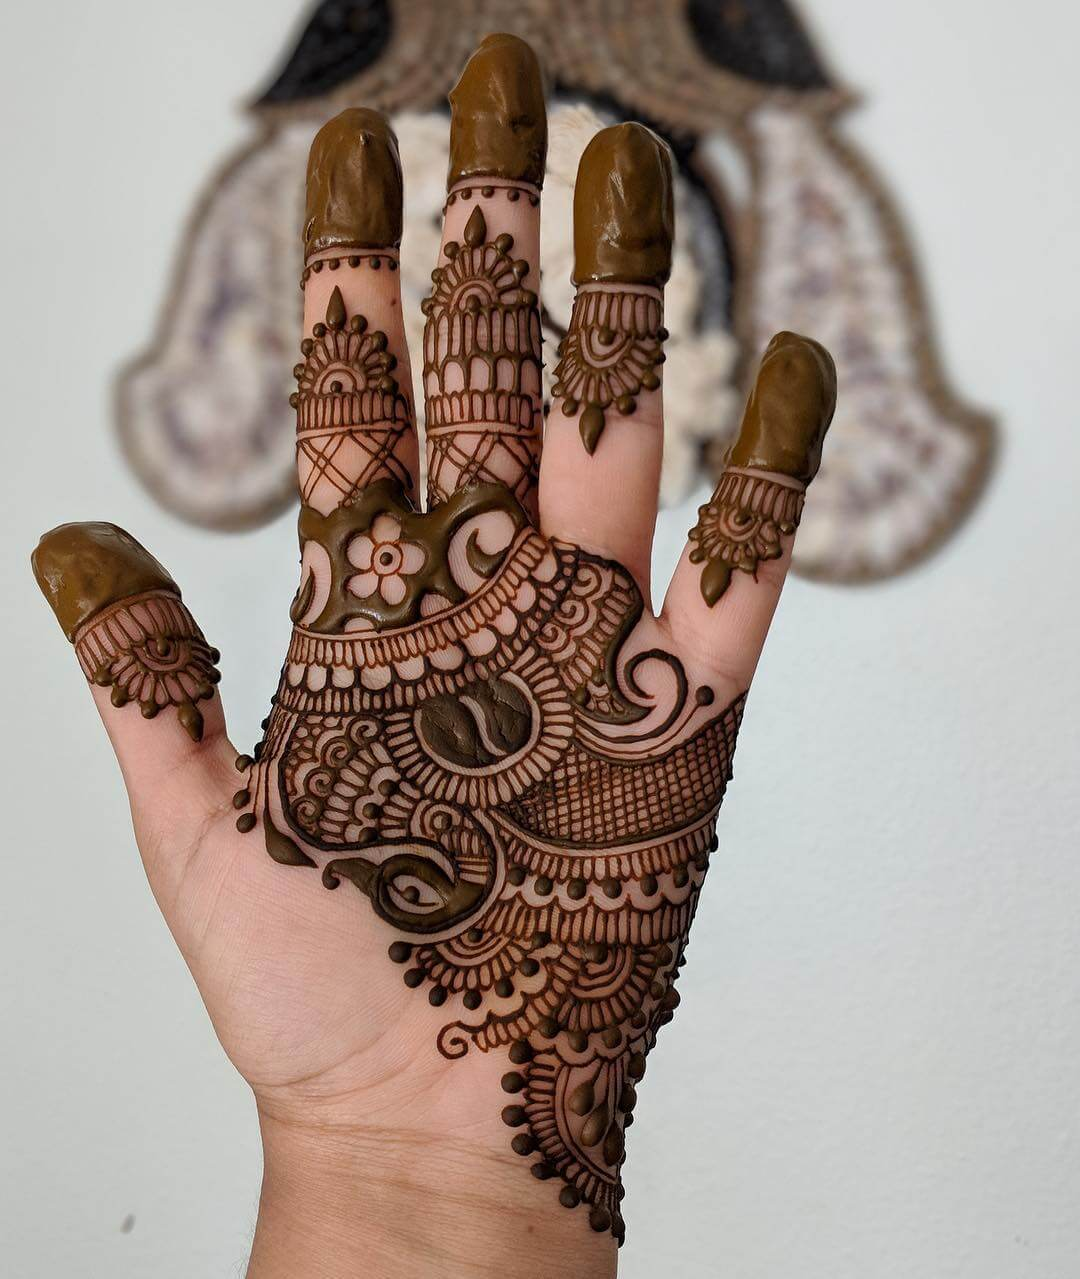 Captivating Peacock Mehndi Design For Palm